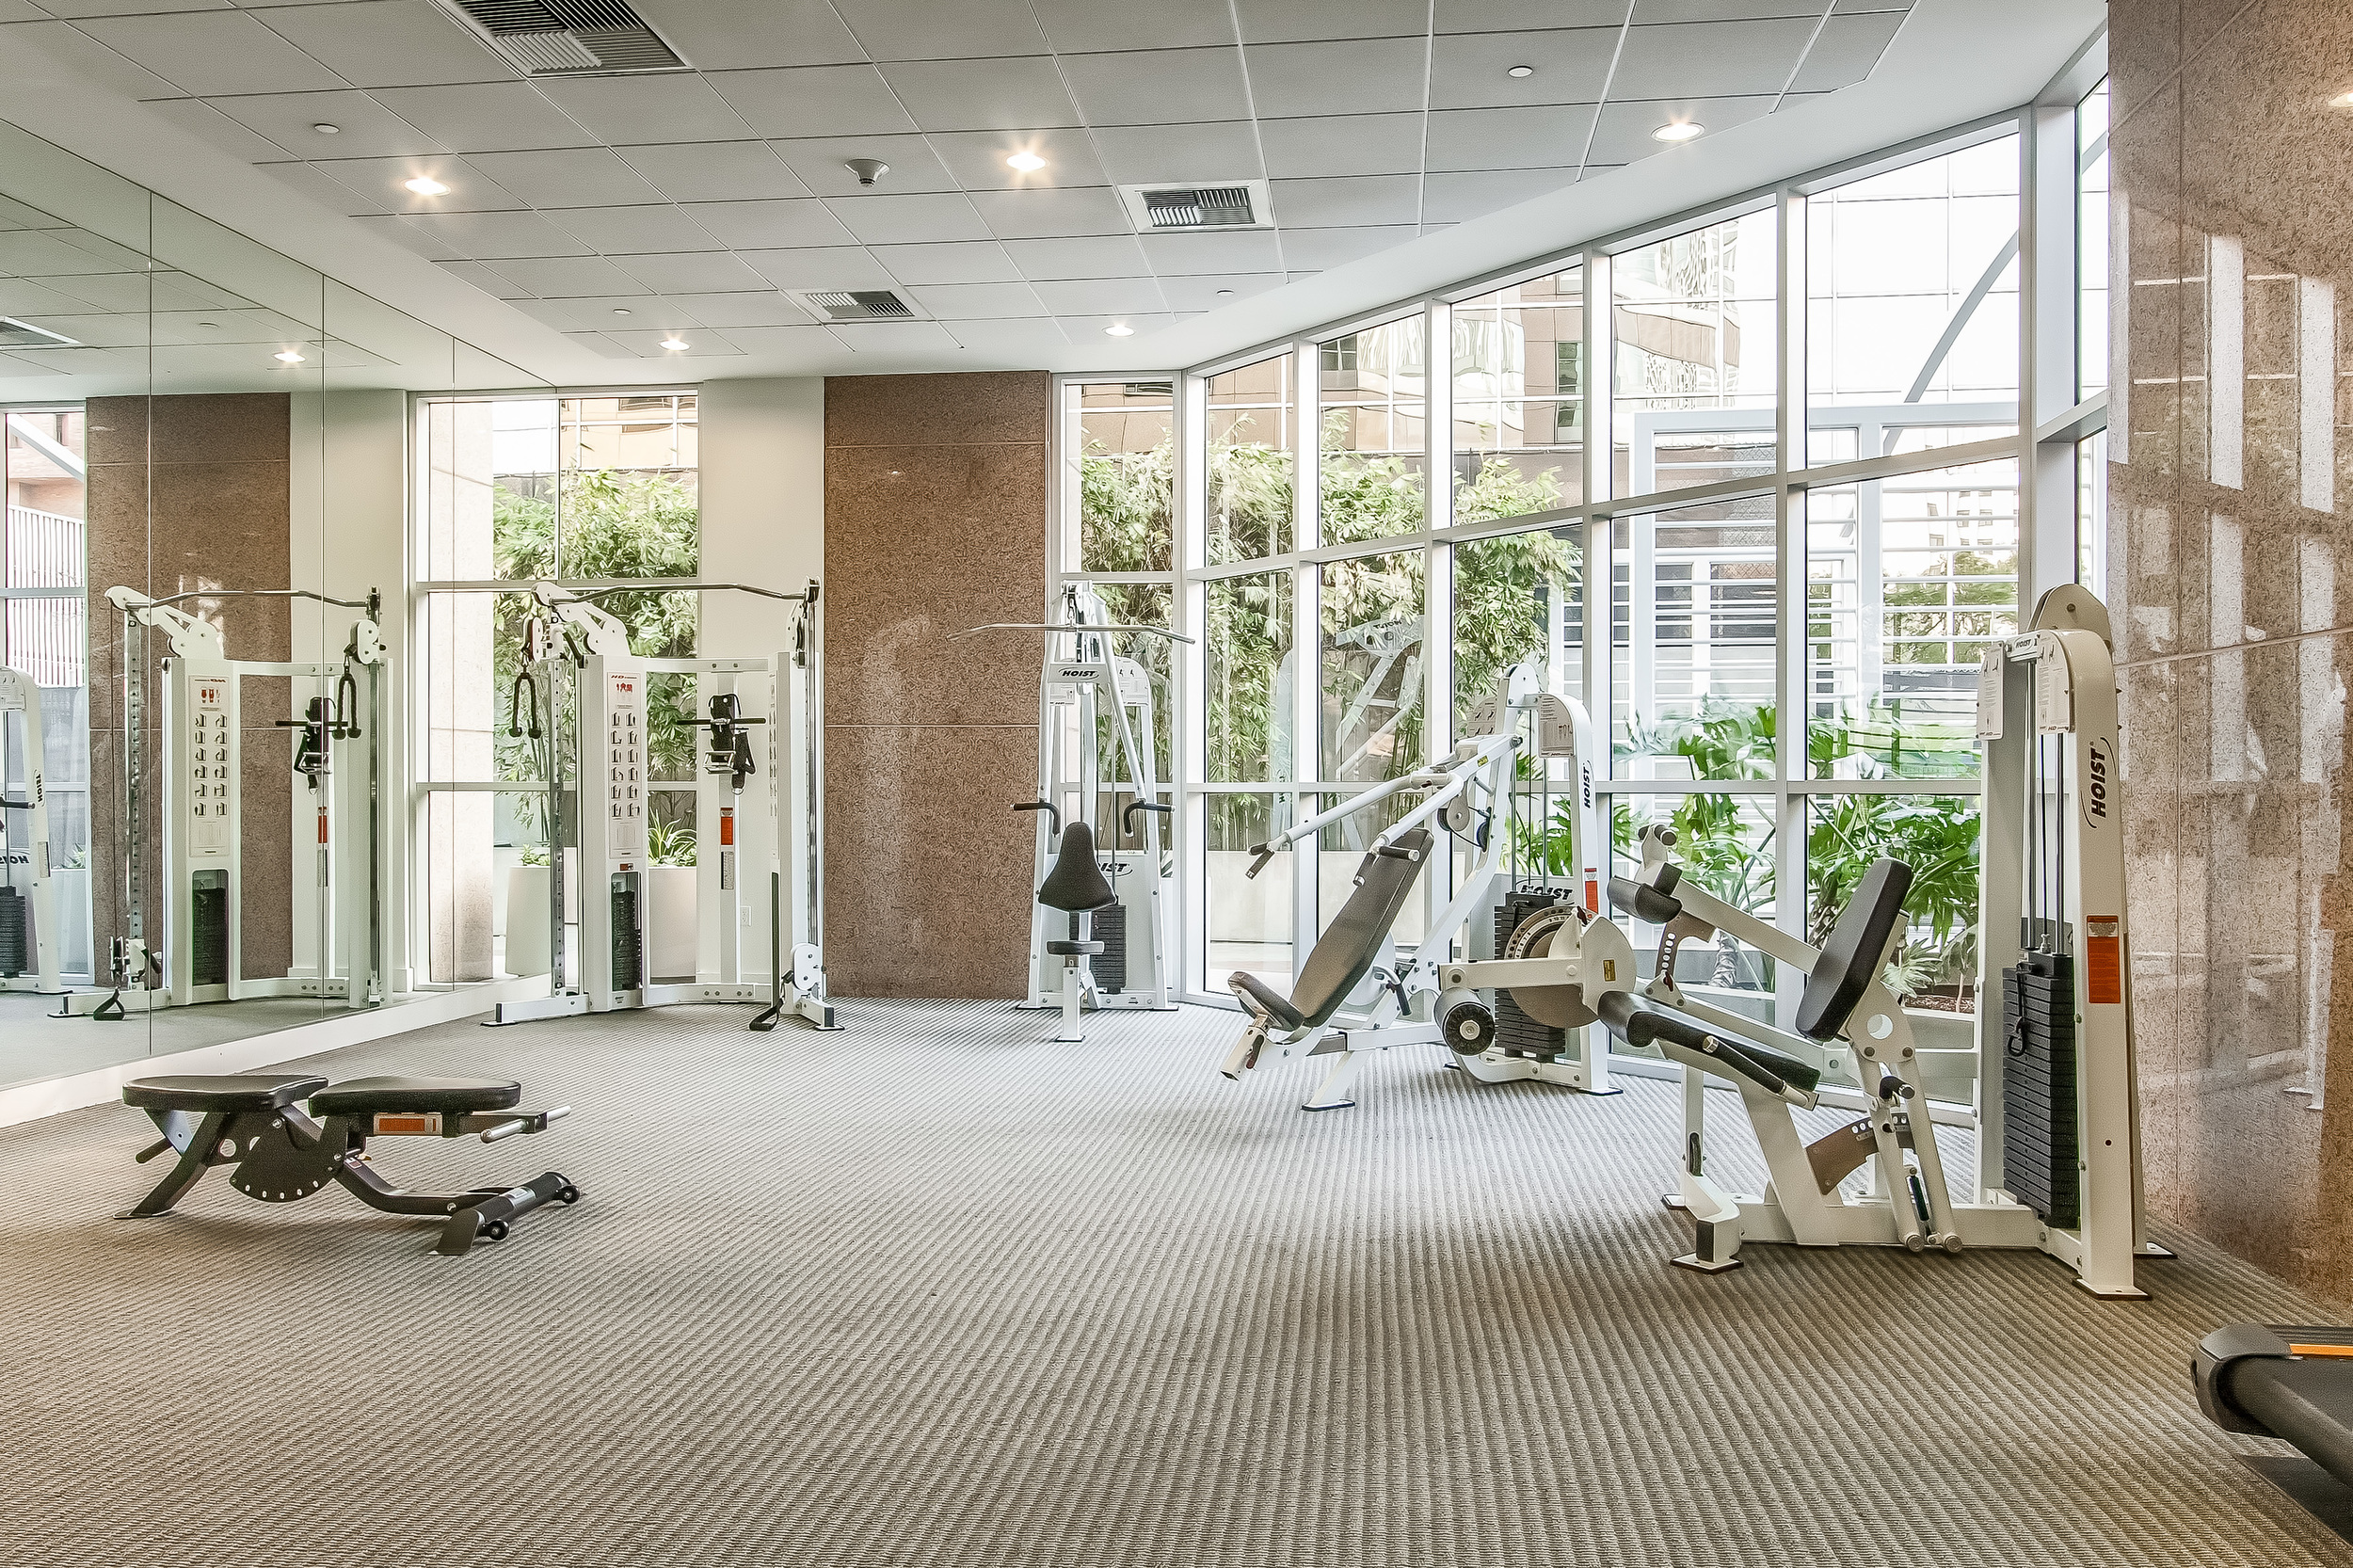 000-Exercise_Room-513527-large.jpg